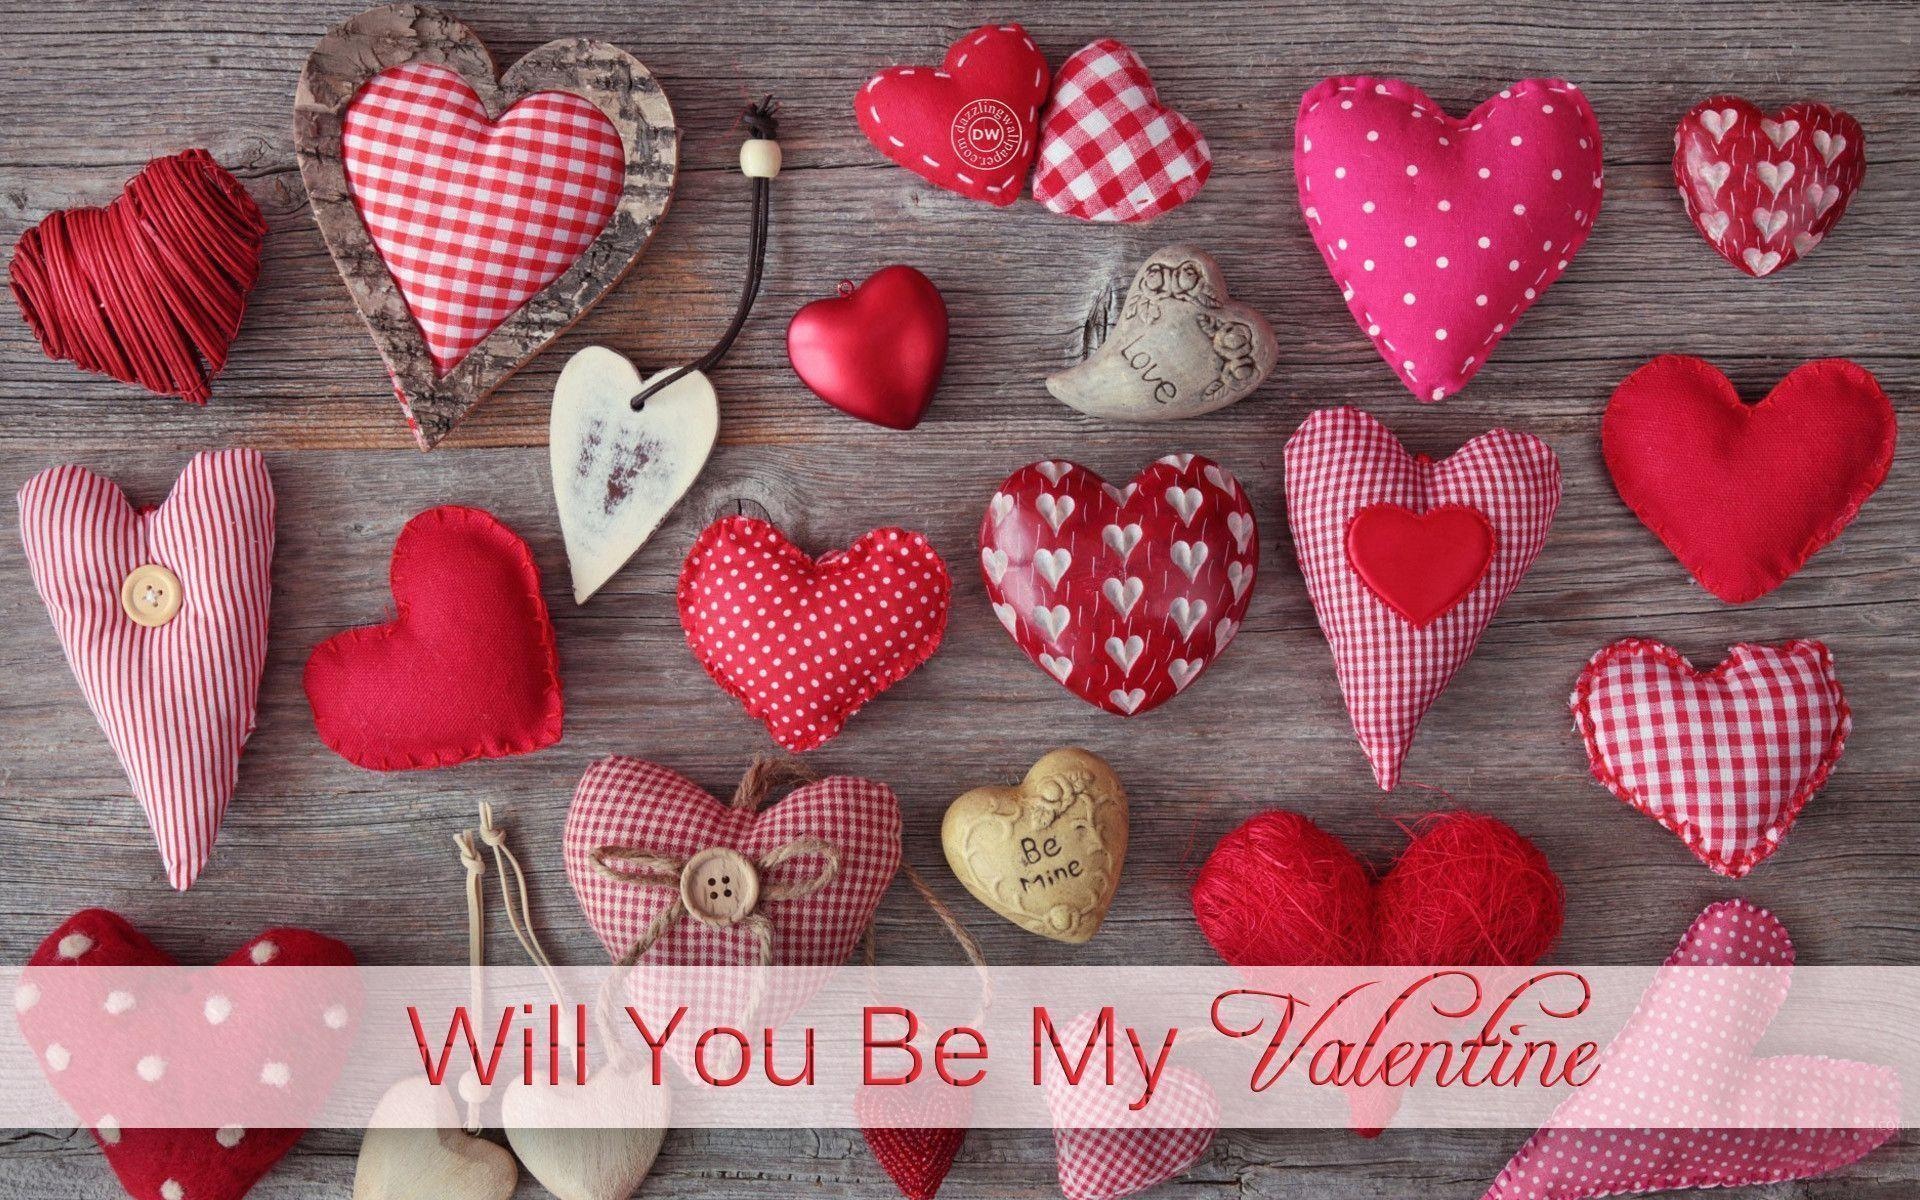 Cute valentines day wallpapers wallpaper cave - Cute valentines backgrounds ...